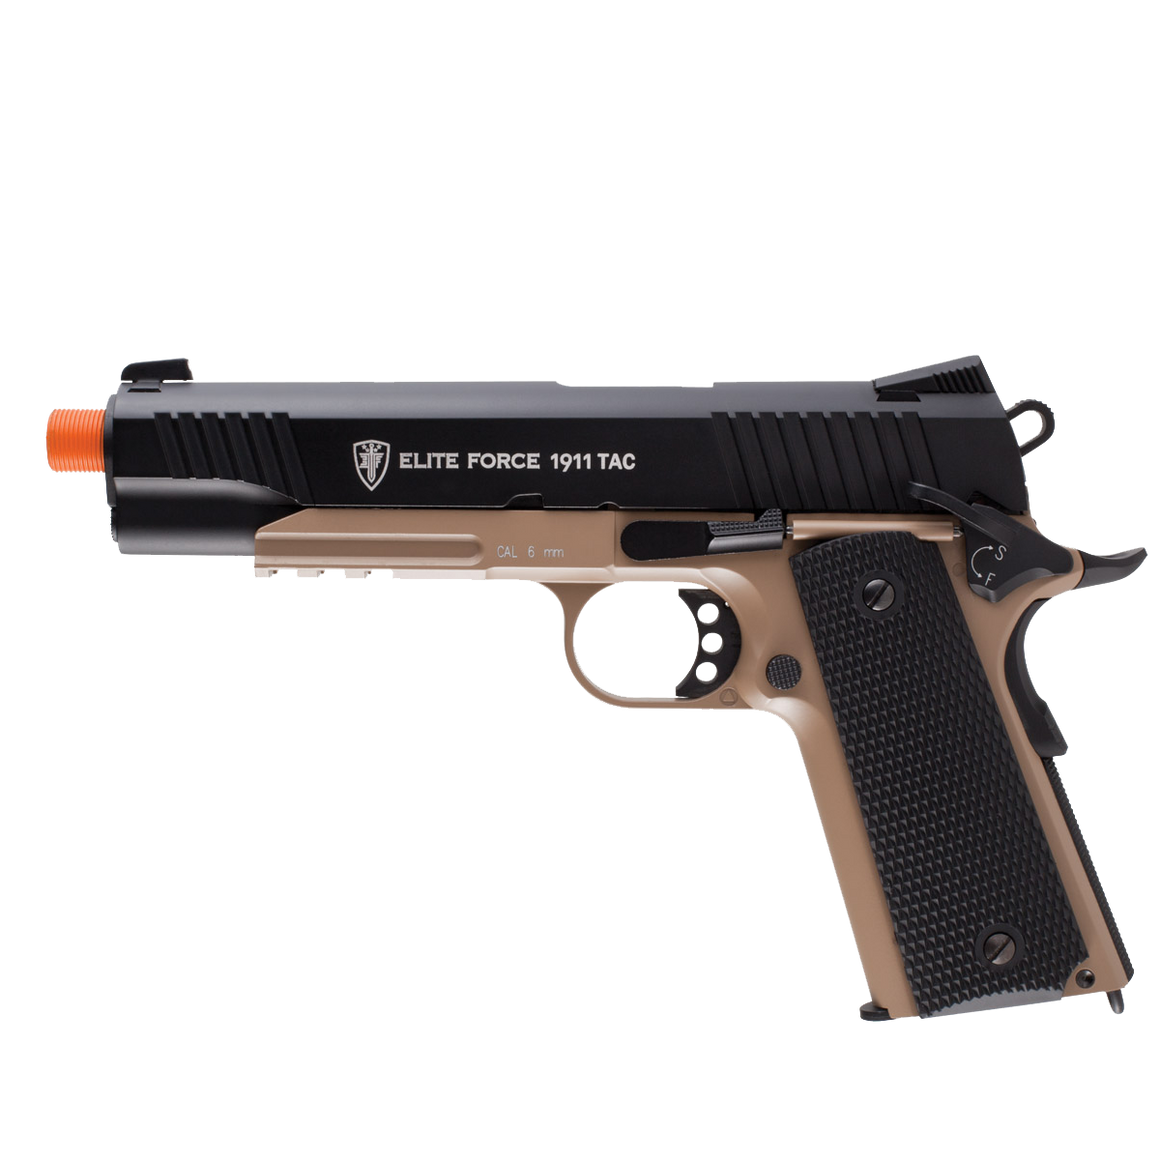 Elite Force 1911 TAC Co2 GBB Pistol Two Tone